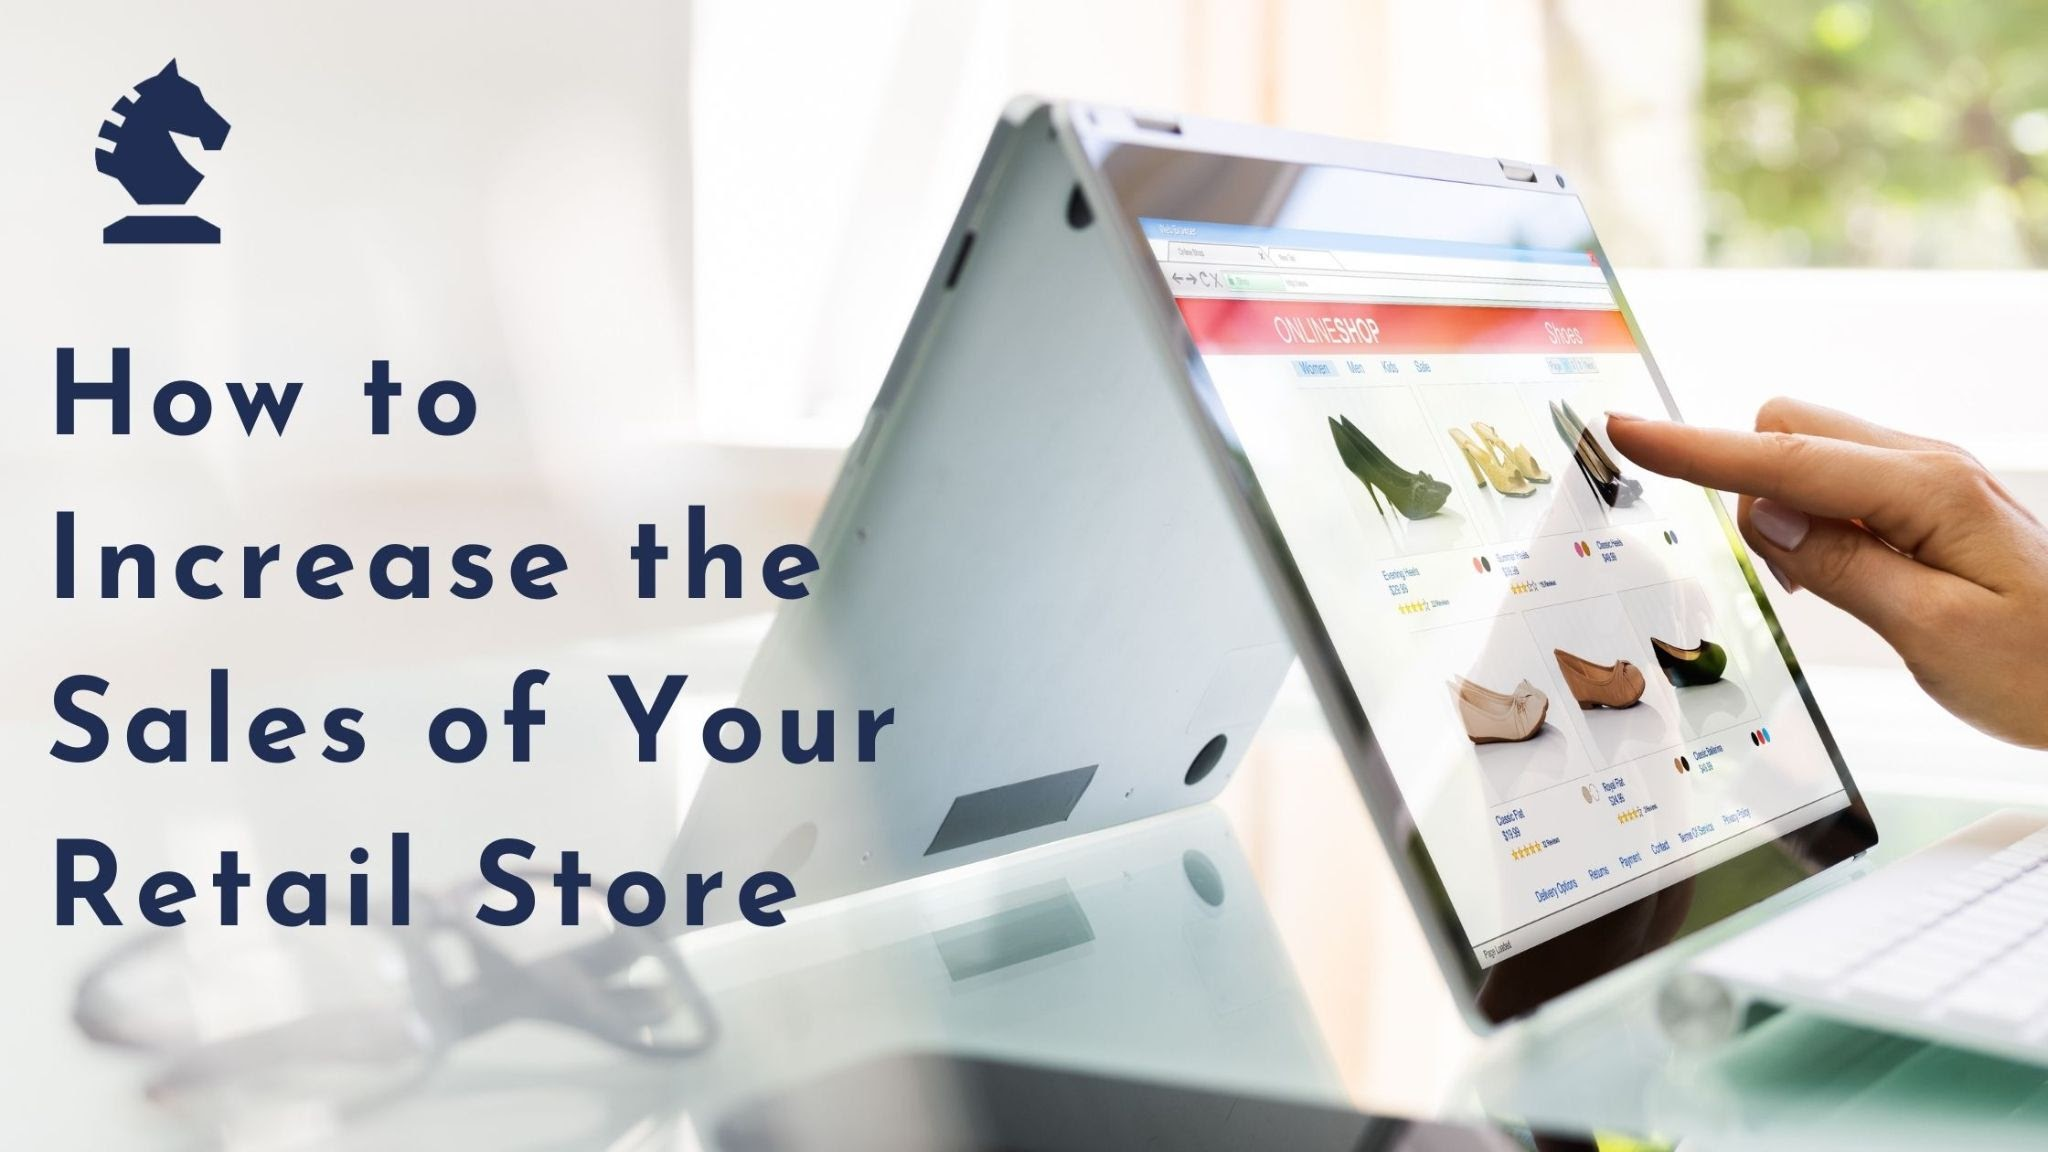 How to Increase the Sales of Your Retail Store